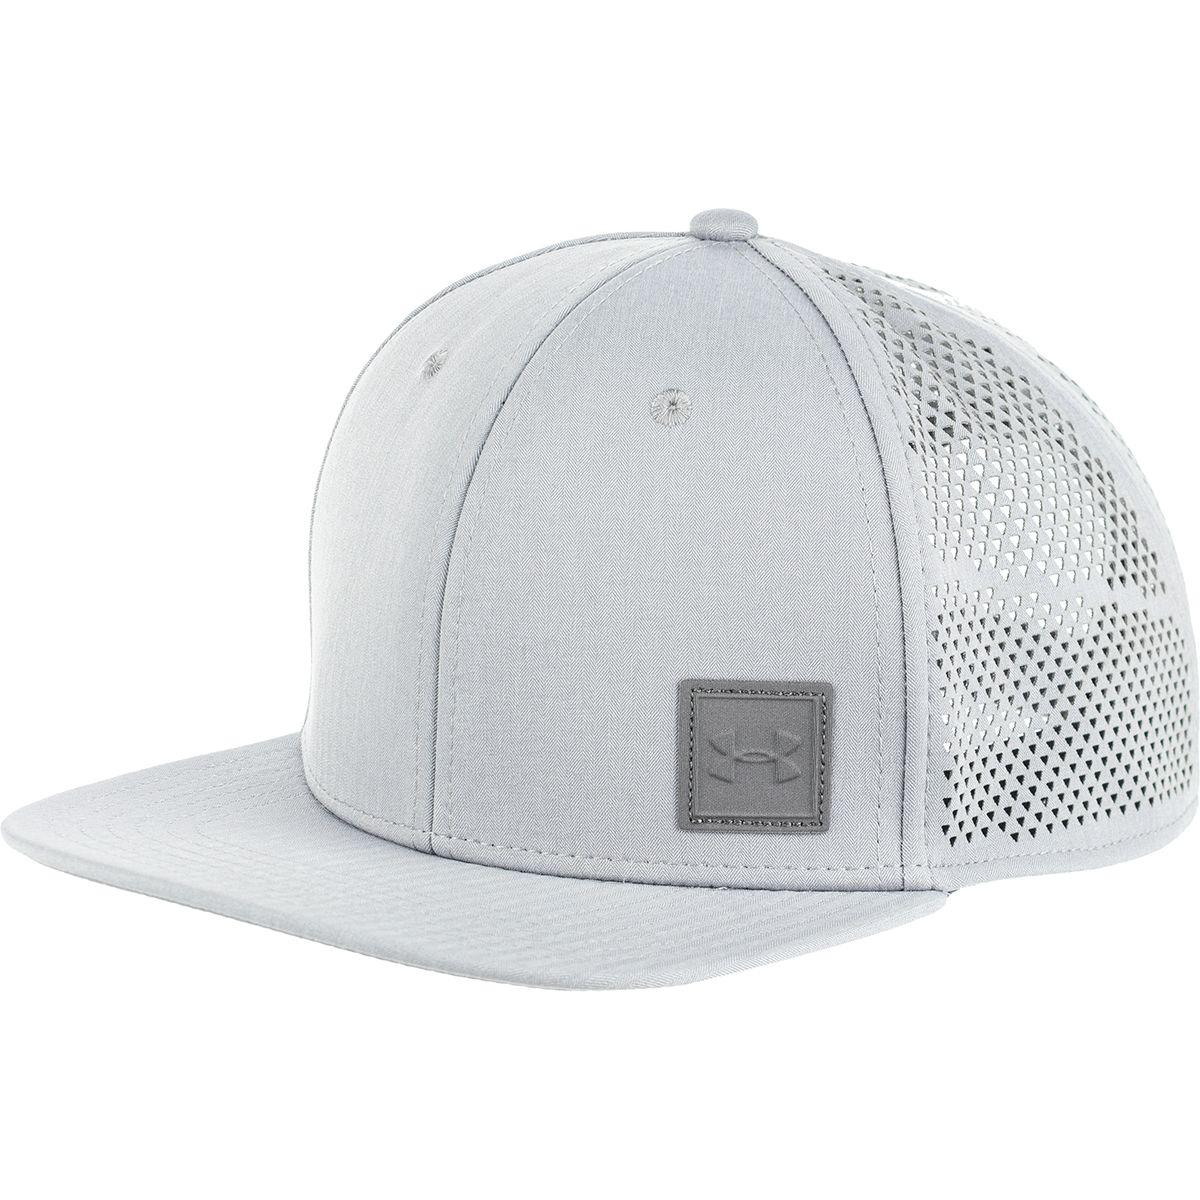 ce89836fe9d Under Armour - Multicolor Supervent Flat Brim 2.0 Snapback Hat for Men -  Lyst. View fullscreen